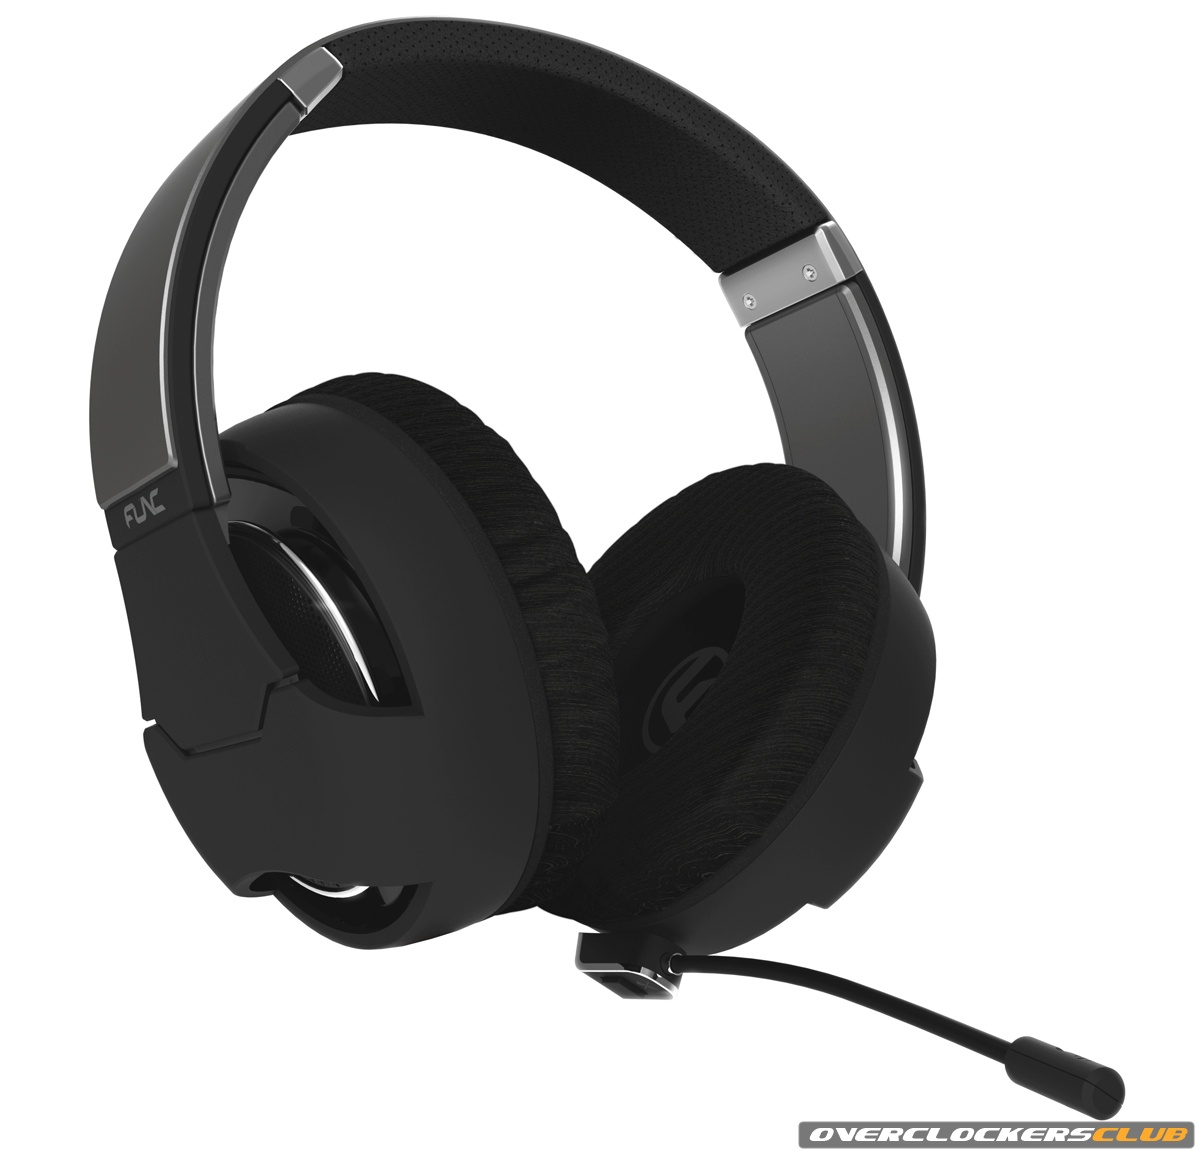 Func Announces the HS-260 Gaming Headset